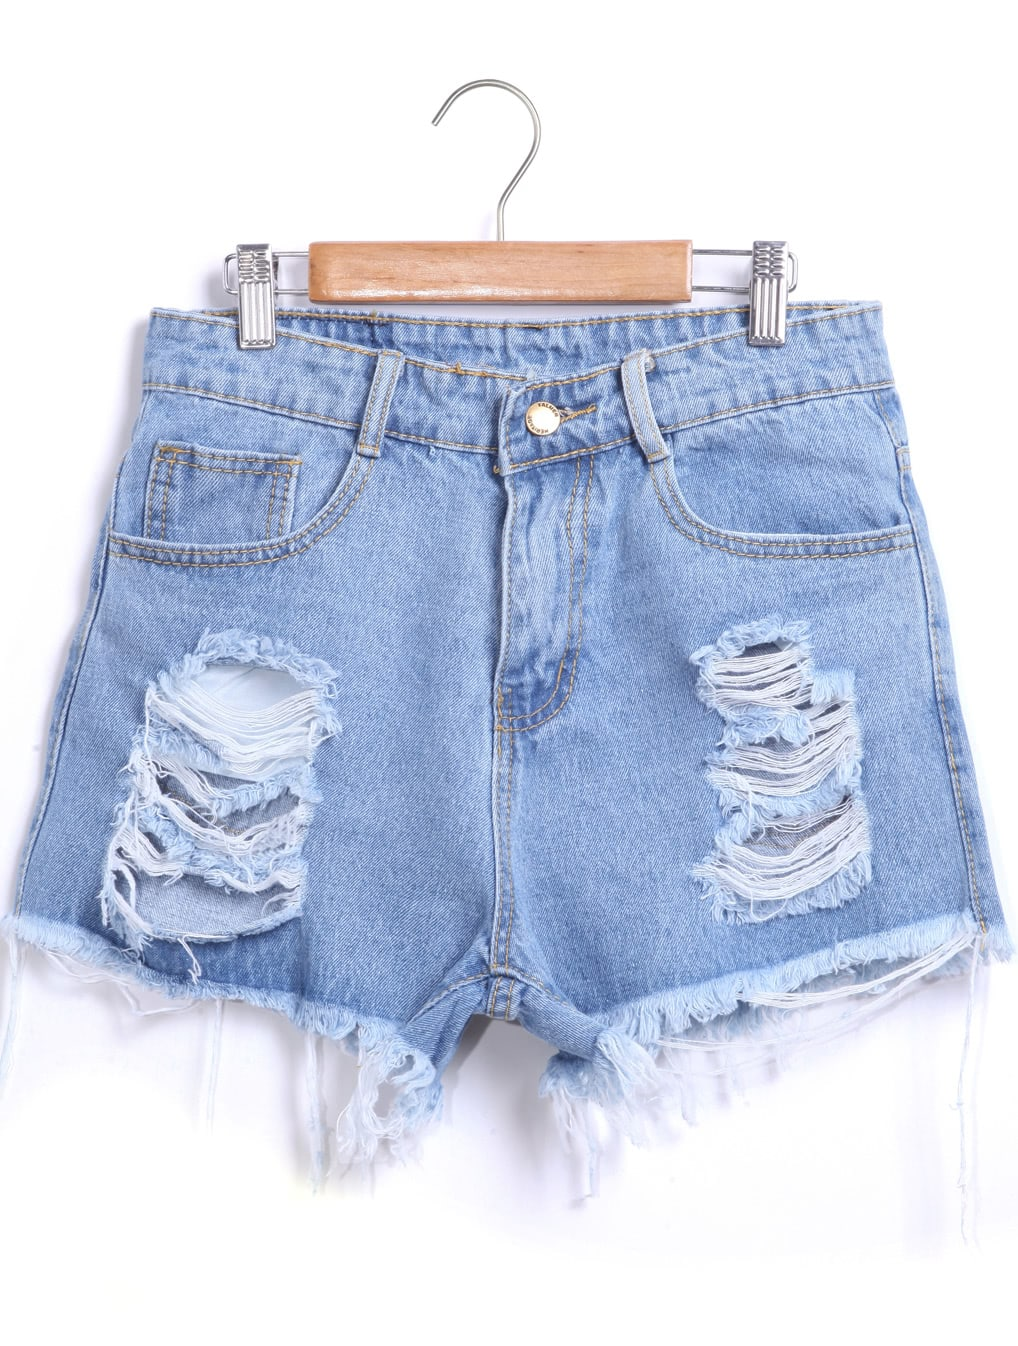 ripped jeans shorts bbg clothing